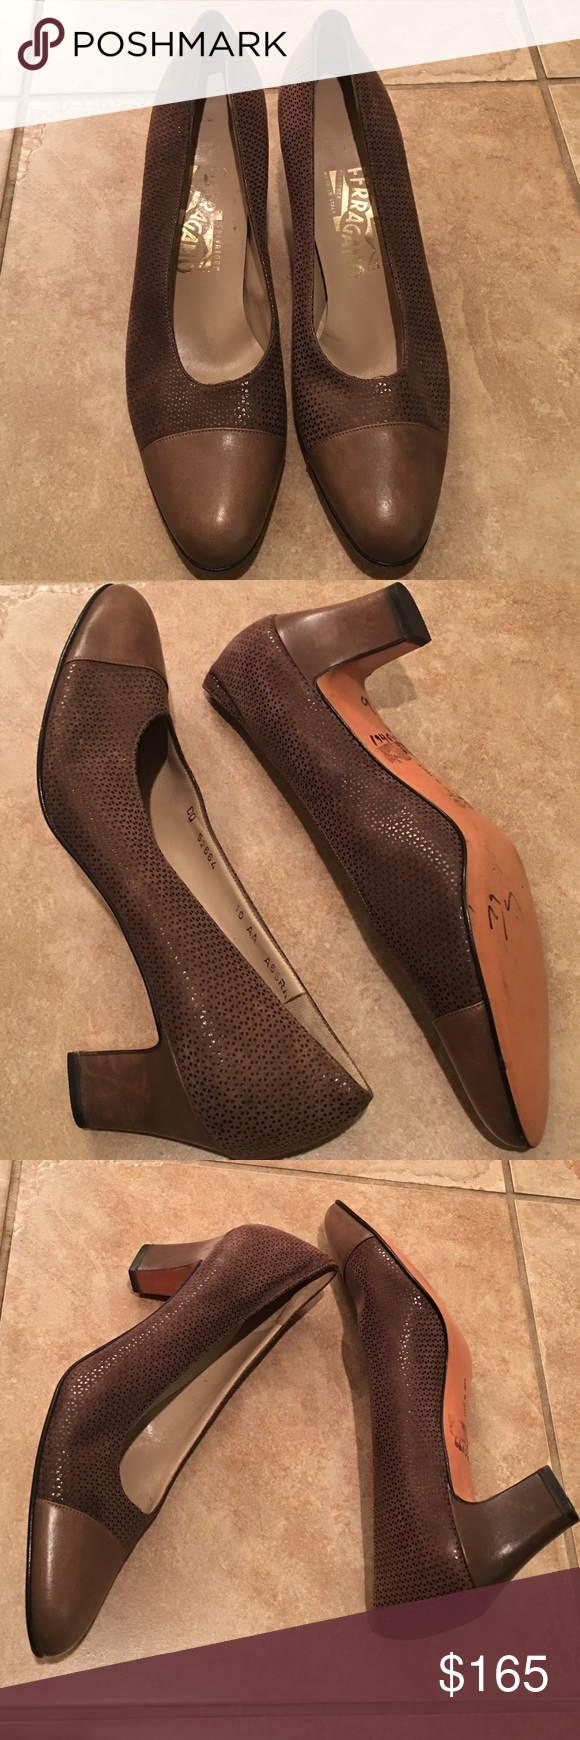 Brown Salvatore Ferragamo Heels *Used* brown Salvatore Ferragamo 2 inch heel pumps. Features leather & suede. Made in Italy. See photos for wear. PLEASE NOTE: The serial number shows a size 10, but when comparing to other shoes it seems to be a size 9. I can provide inch measurements if needed. ✨BUNDLE+SAVE✨ Salvatore Ferragamo Shoes Heels